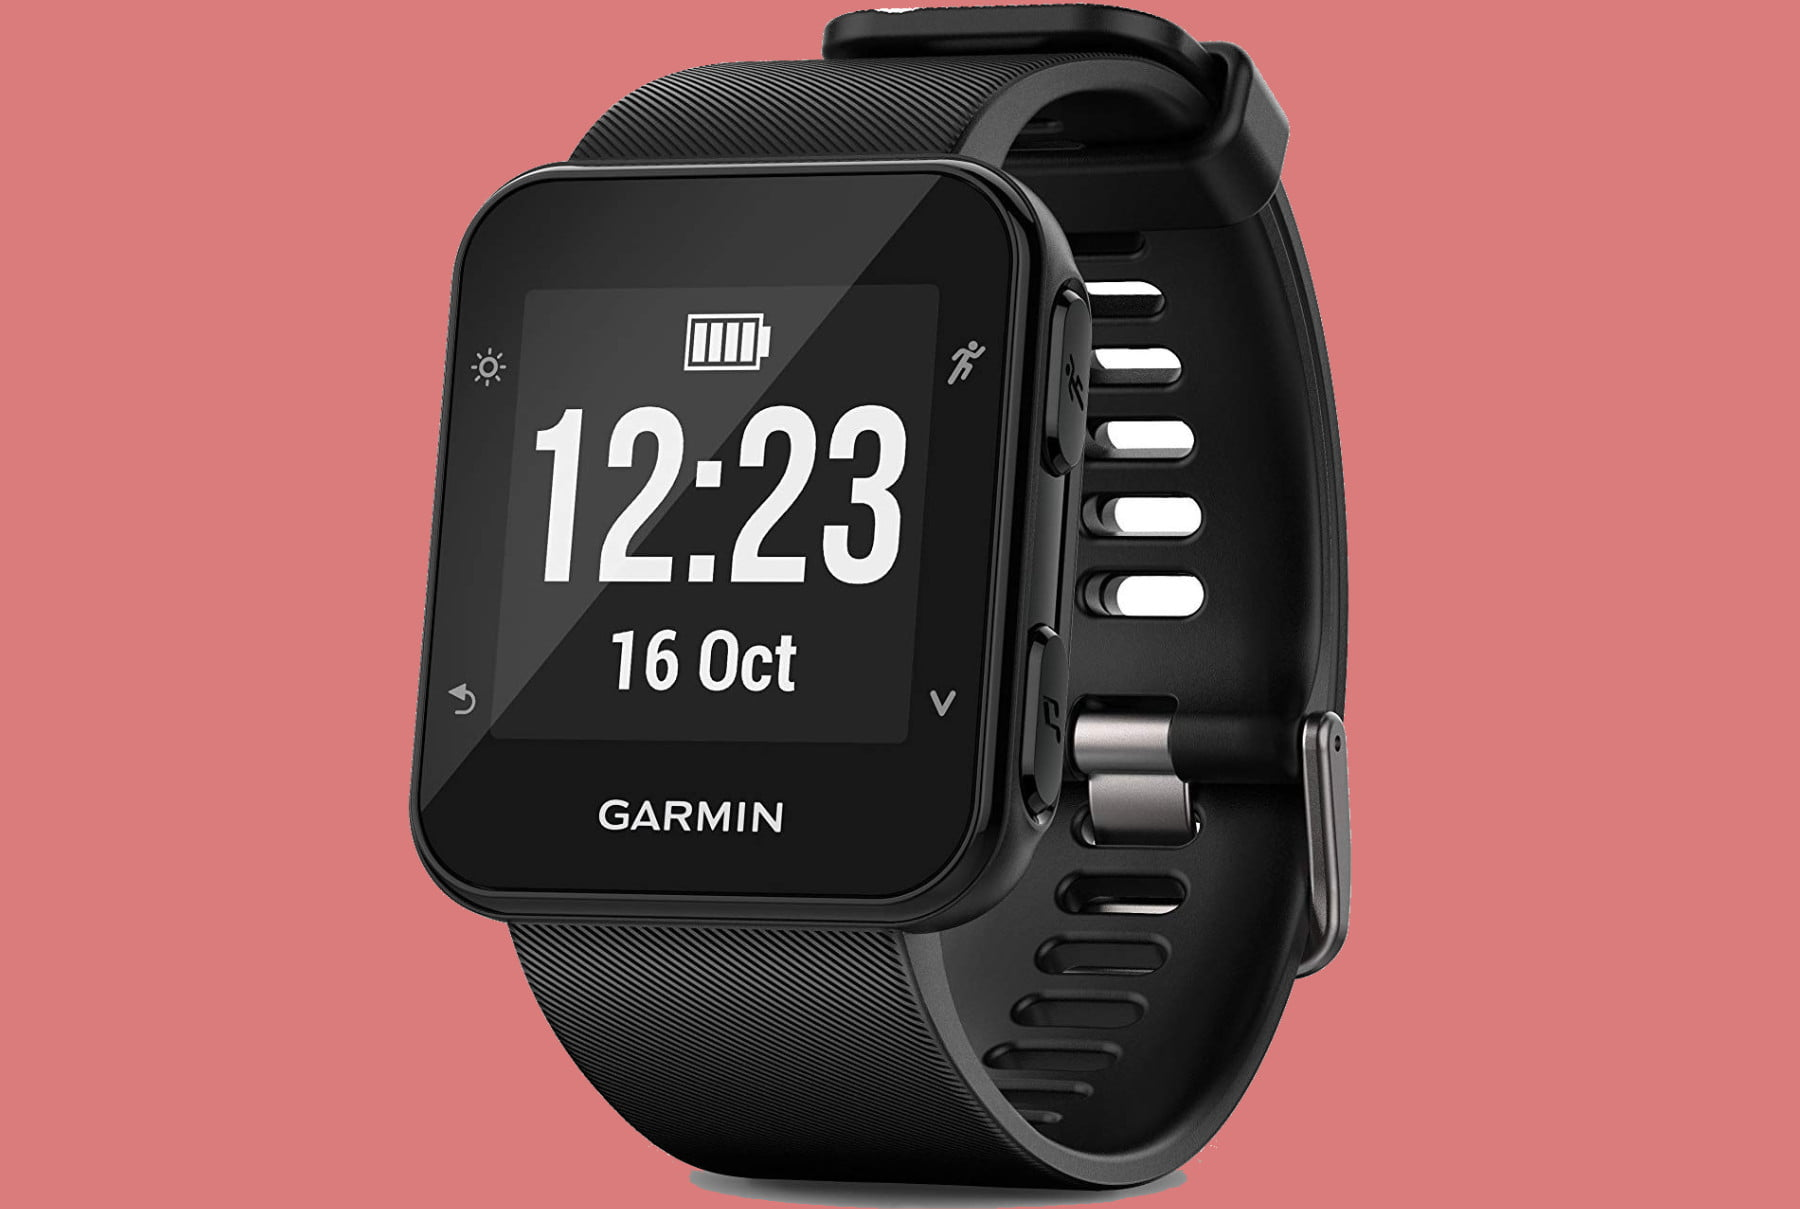 The Garmin Forerunner 35 is available for $70 less on Amazon